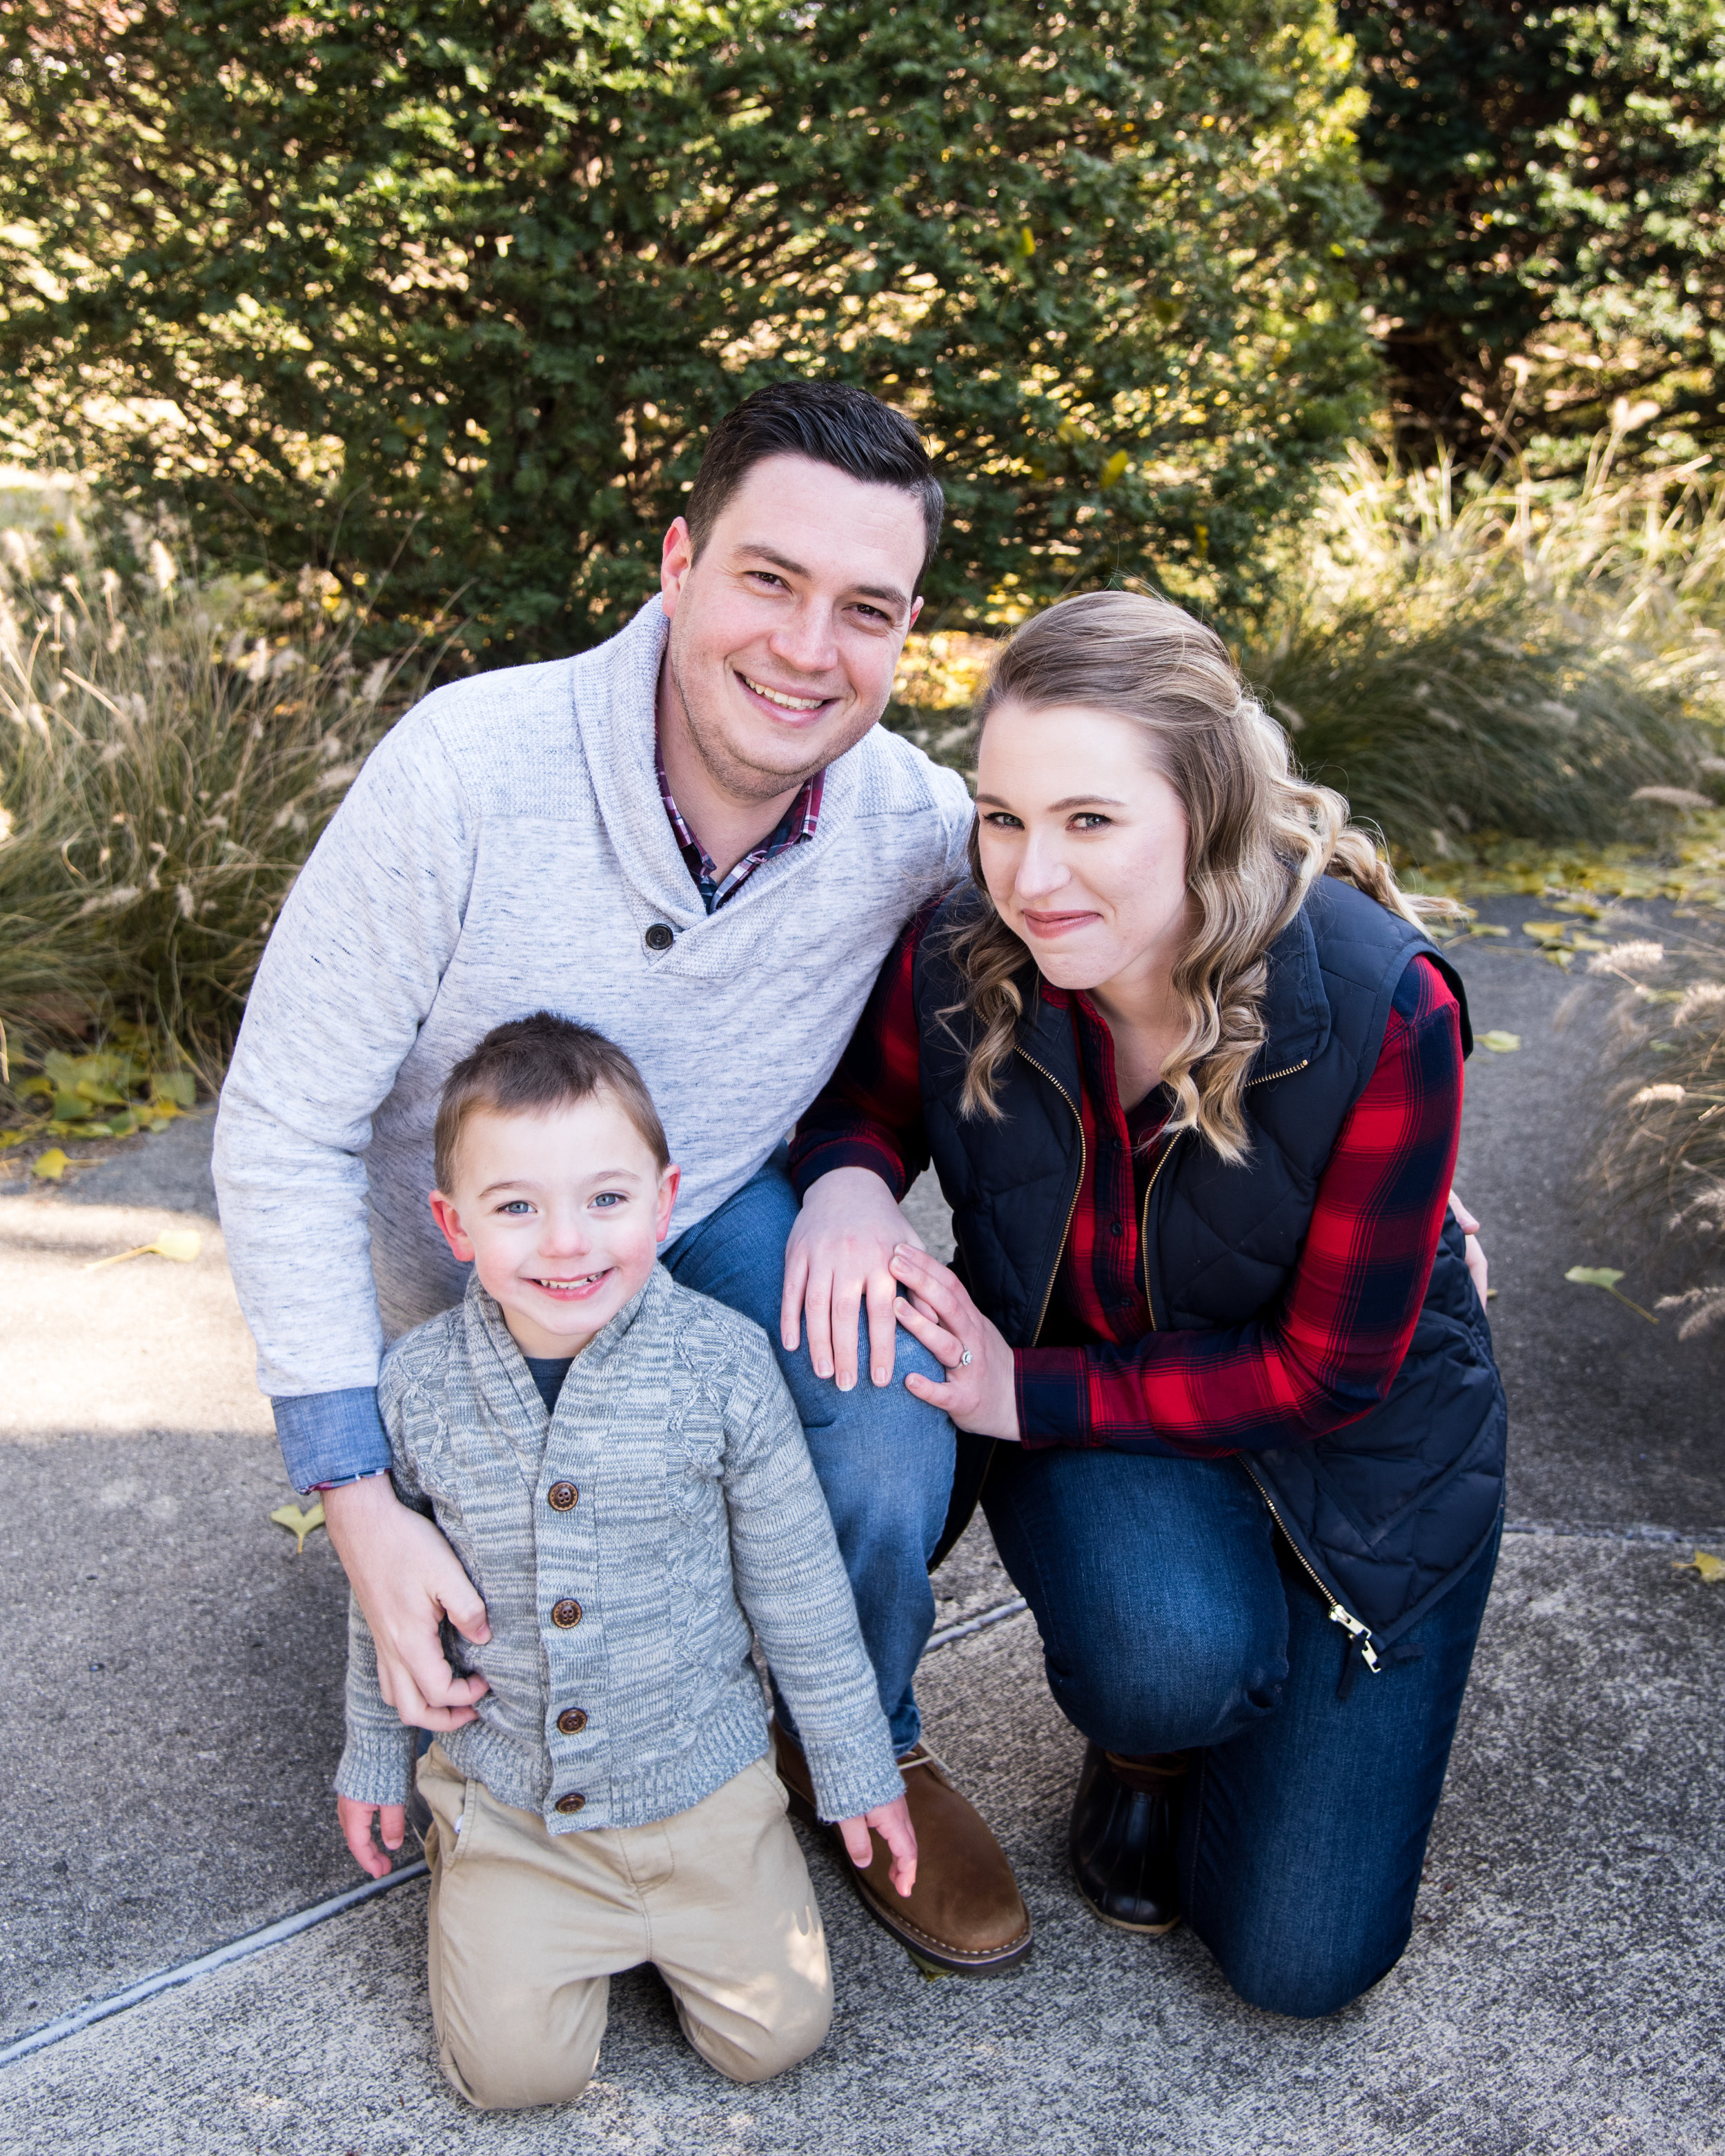 Kyla Jo Photography // Muncie, Indiana // Midwest Photographer // Family Photography in Indiana